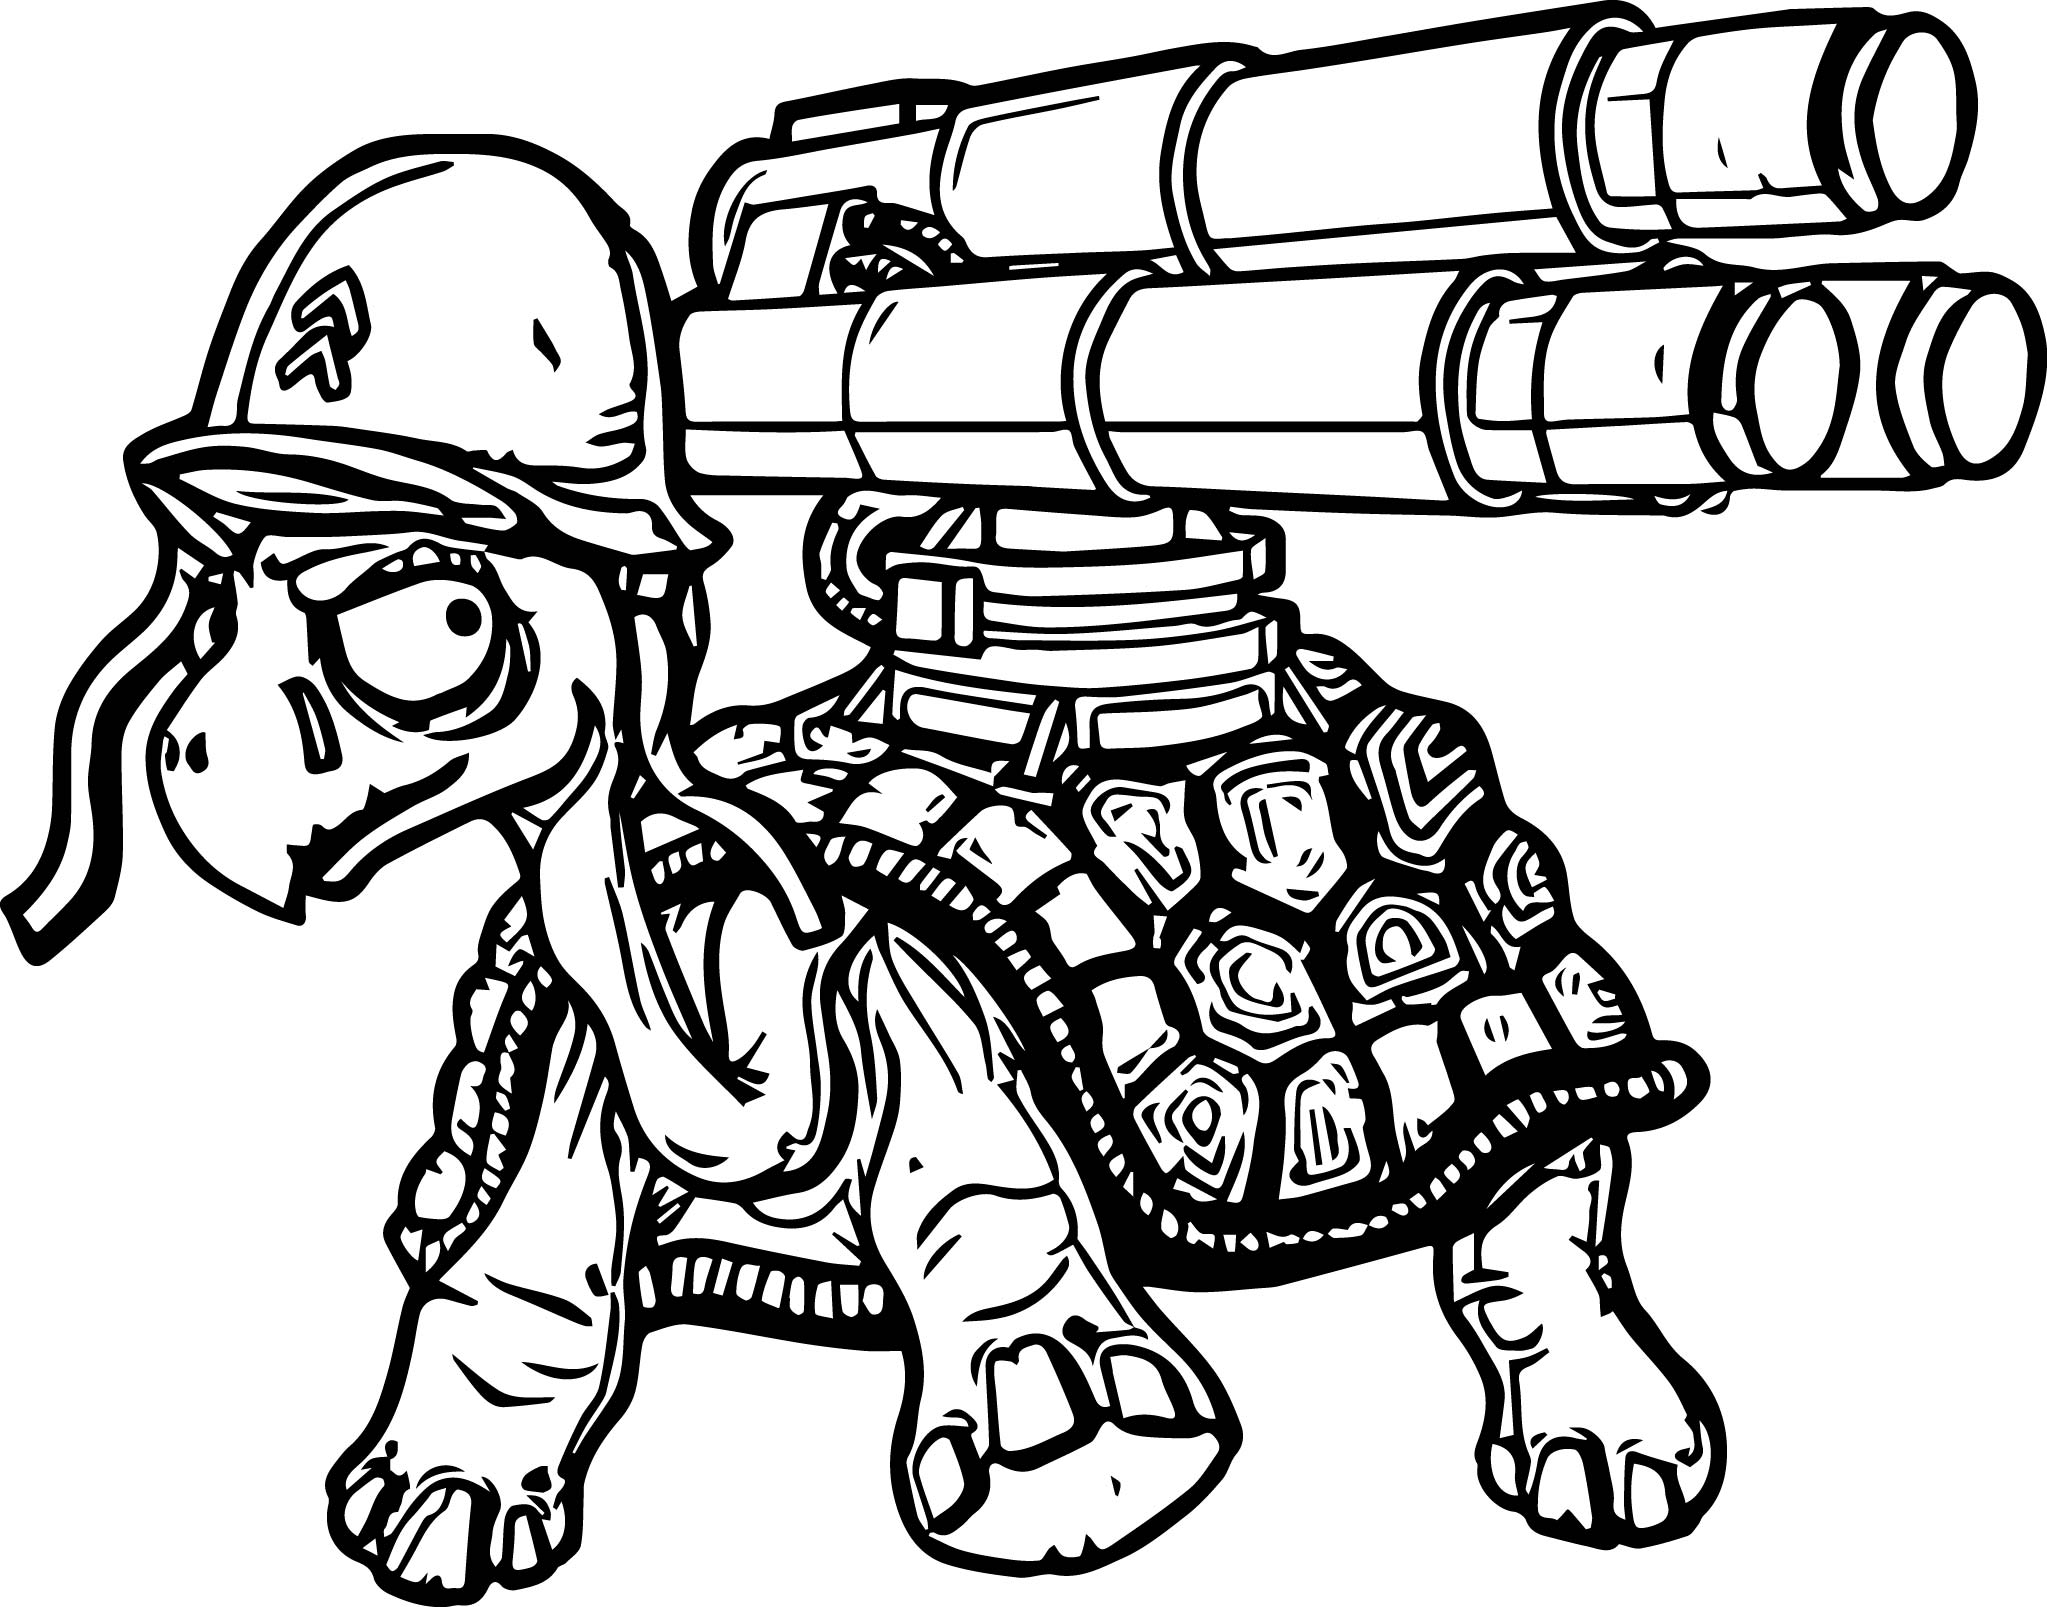 pistol coloring pages - danger tortoise turtle gun coloring page